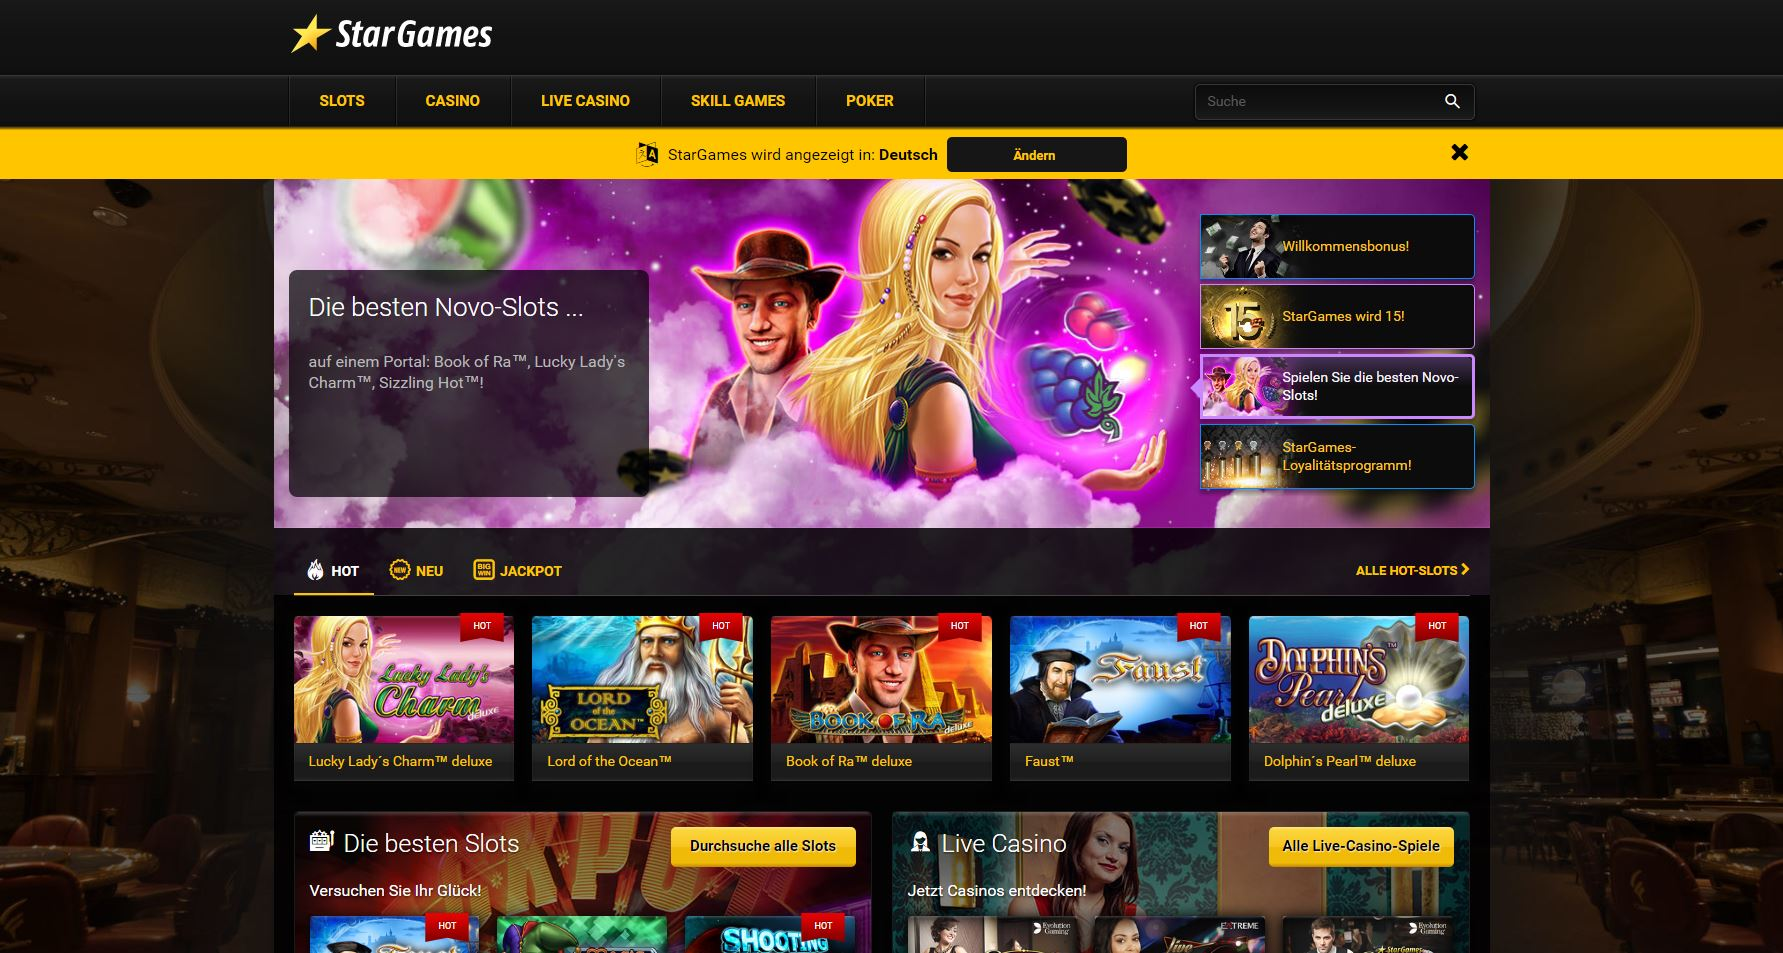 stargames online casino online casino review